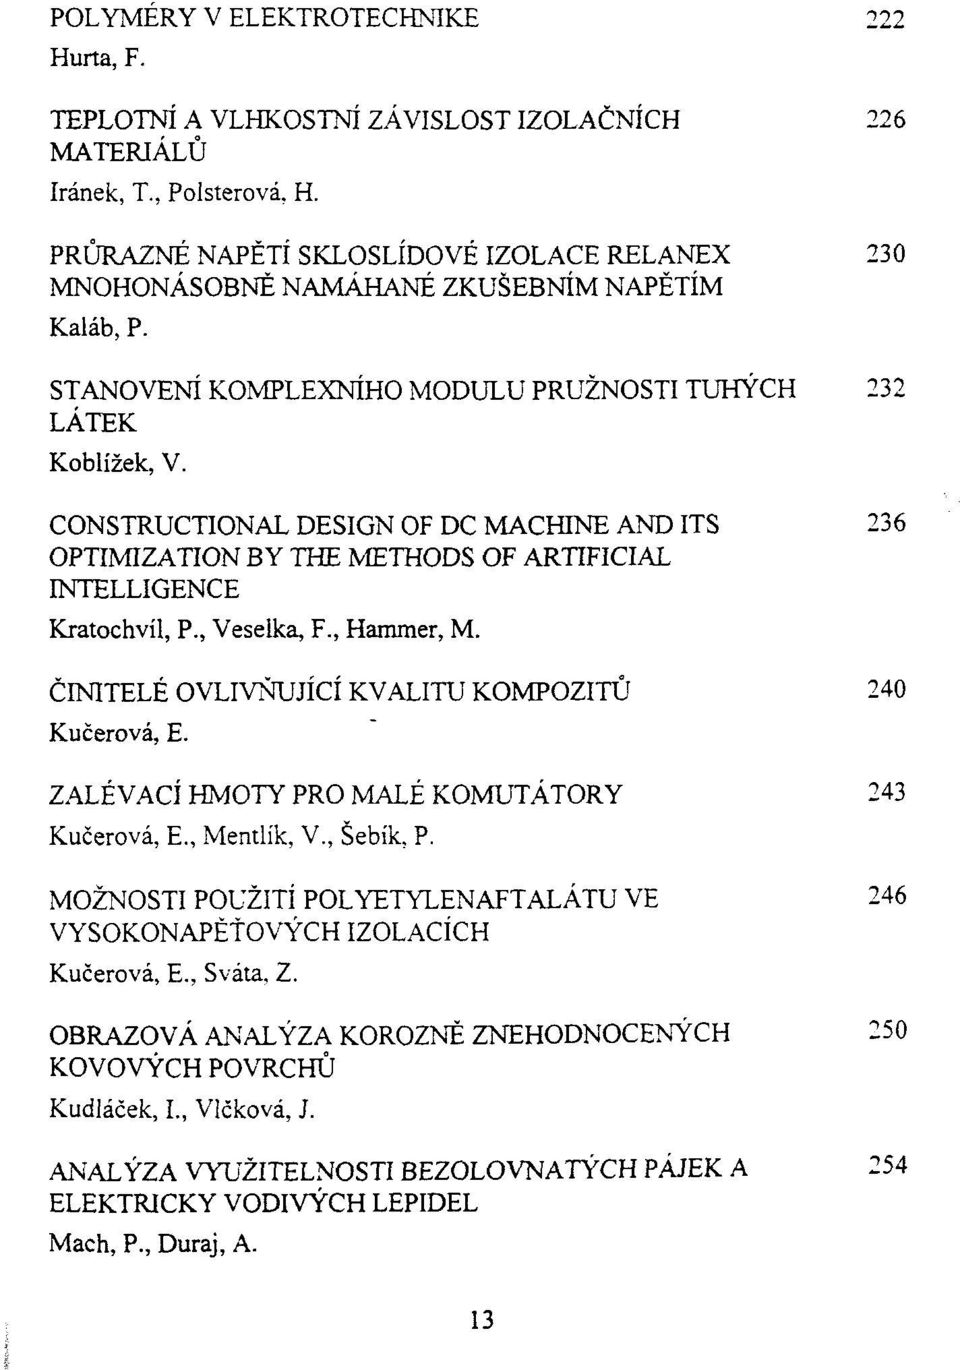 CONSTRUCTIONAL DESIGN OF DC MACHINE AND ITS 236 OPTIMIZATION BY THE METHODS OF ARTIFICIAL INTELLIGENCE Kratochvil, P., Veselka, F., Hammer, M. CINITELE OVLIVNUJICi KVALITU KOMPOZITU 240 Kucerova, E.